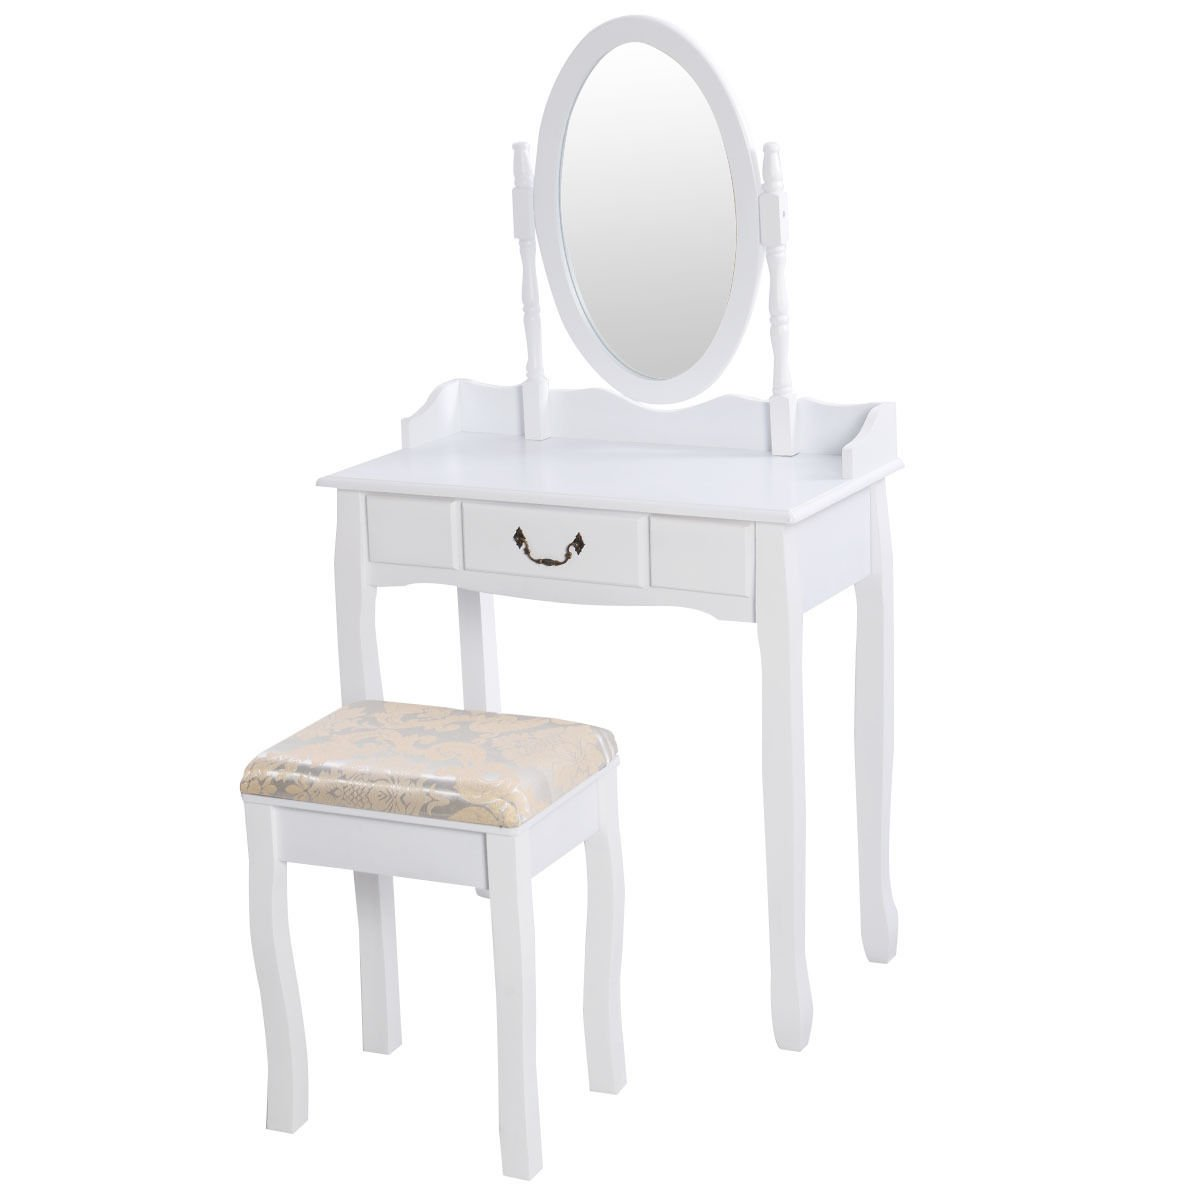 Amazon com ayamastro white vanity table jewelry makeup desk dresser w drawer stool kitchen dining